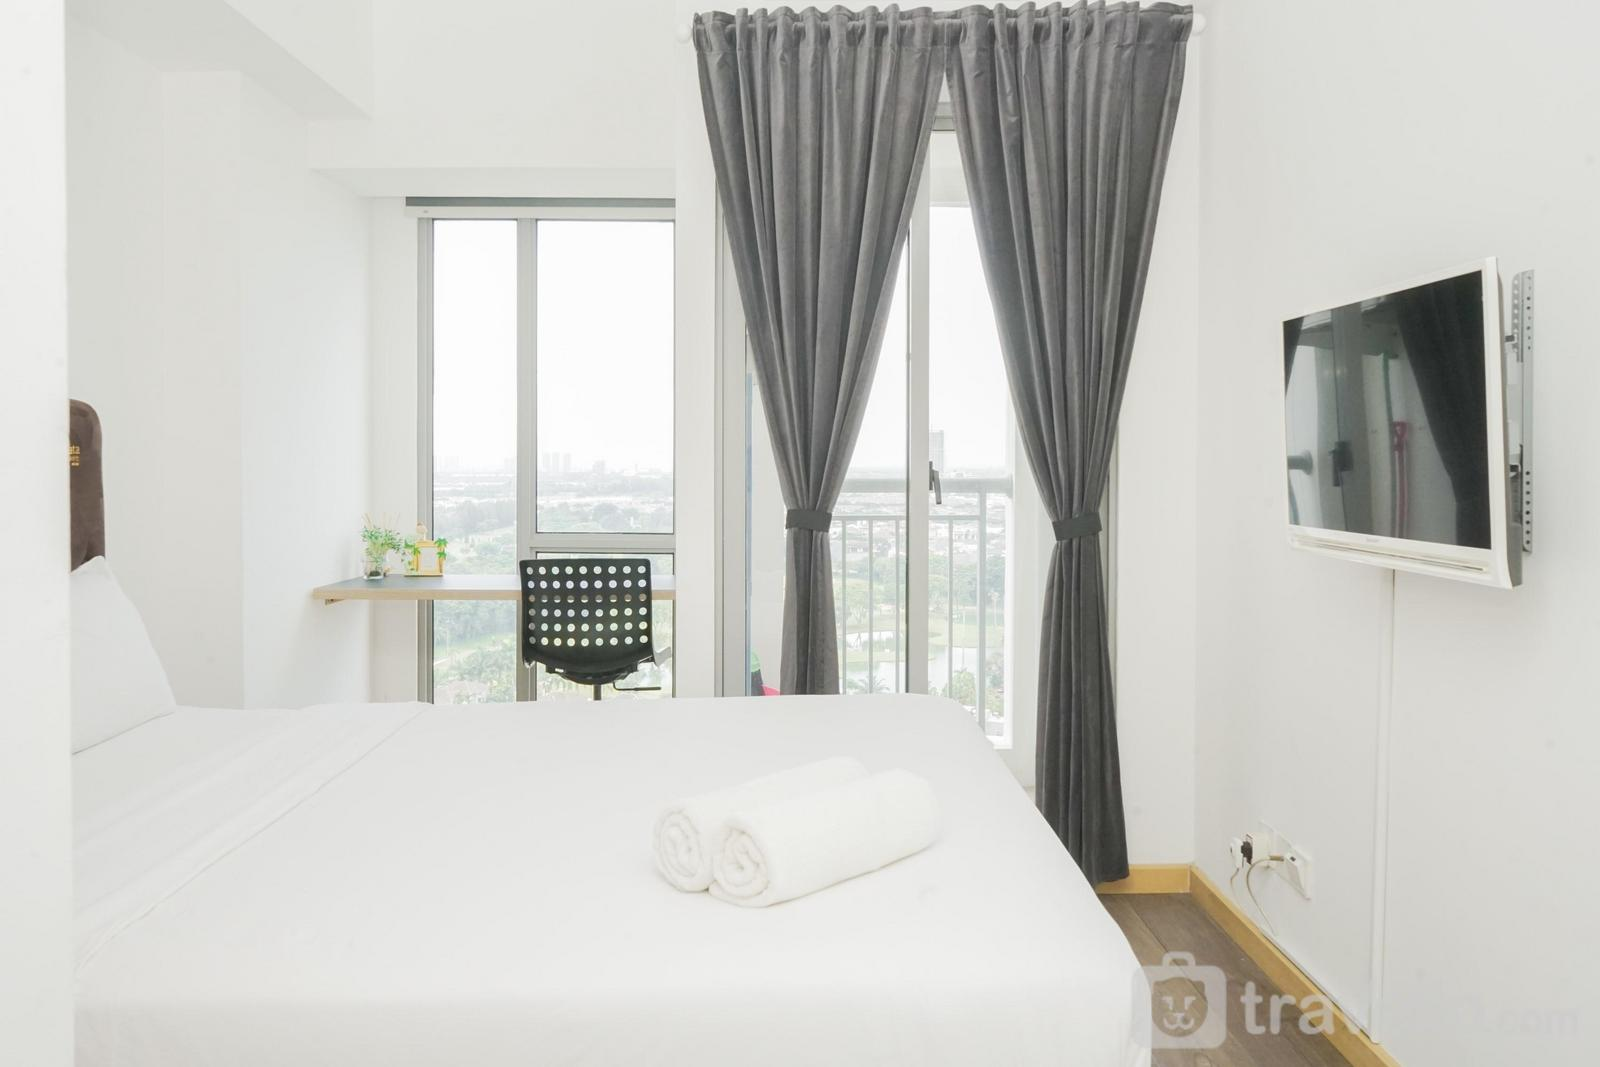 Apartemen M-Town Residence - Great Choice Studio Apartment at M-Town Residence By Travelio